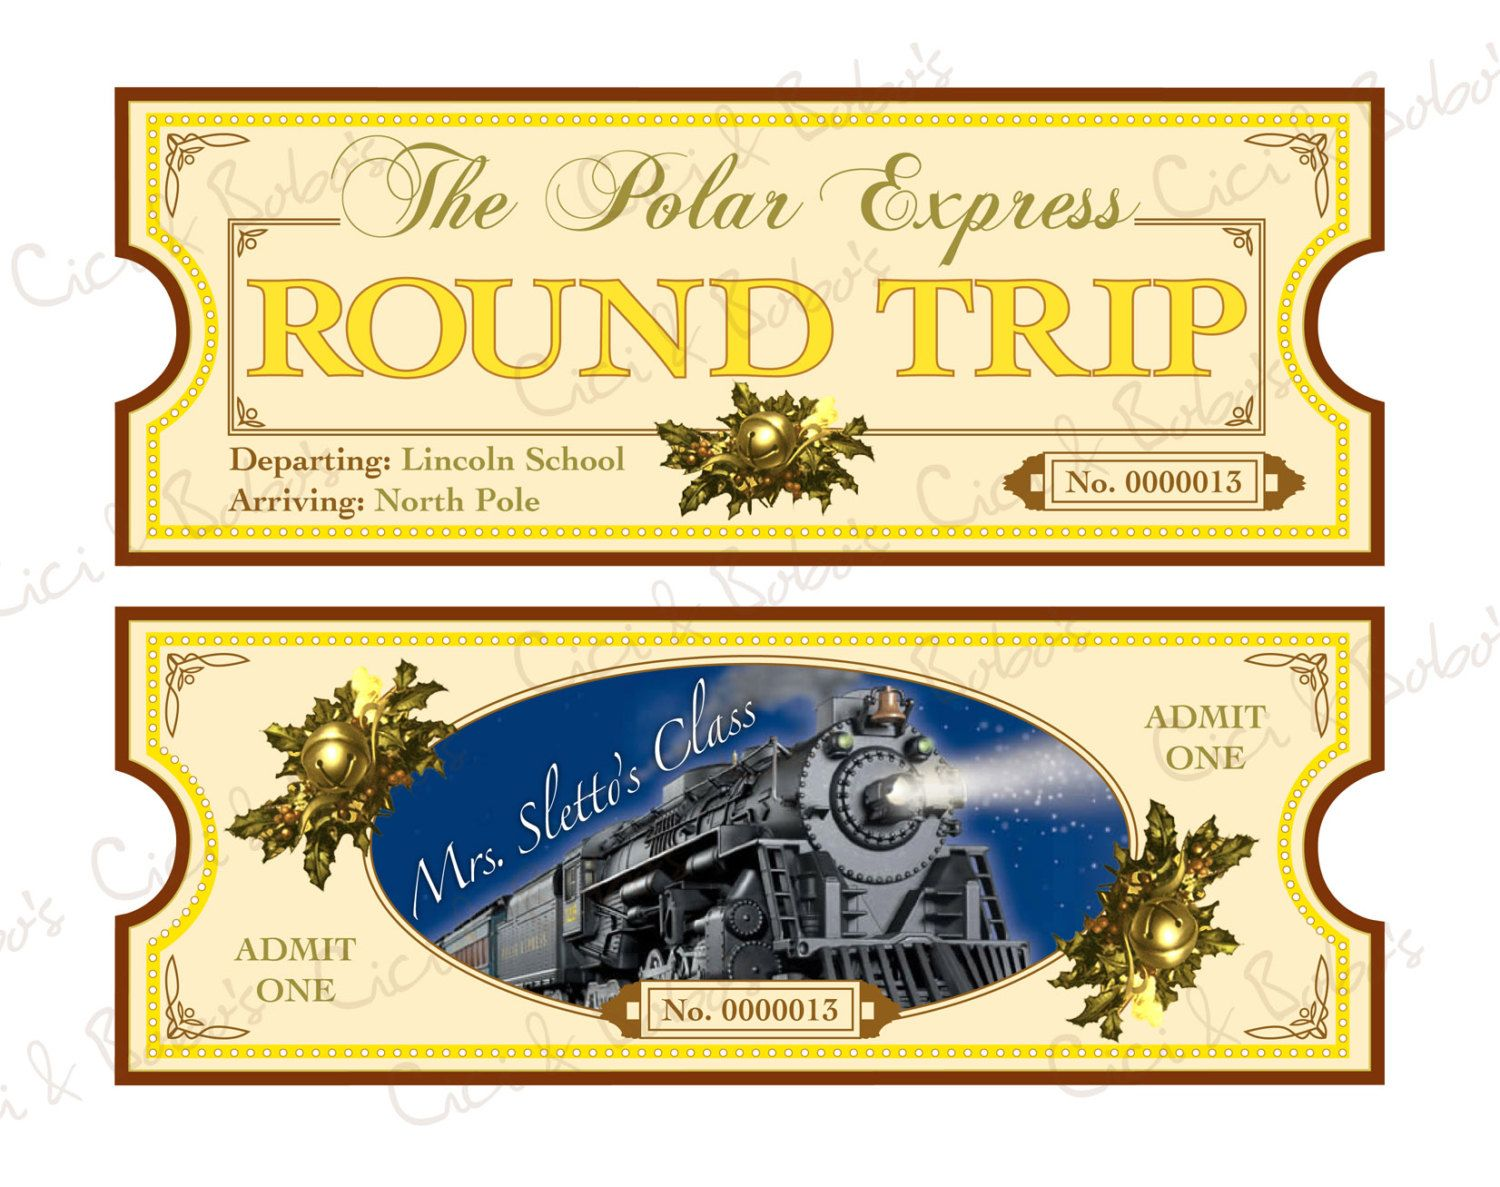 graphic regarding Polar Express Tickets Printable referred to as Polar Categorical Ticket Template Printable polar convey